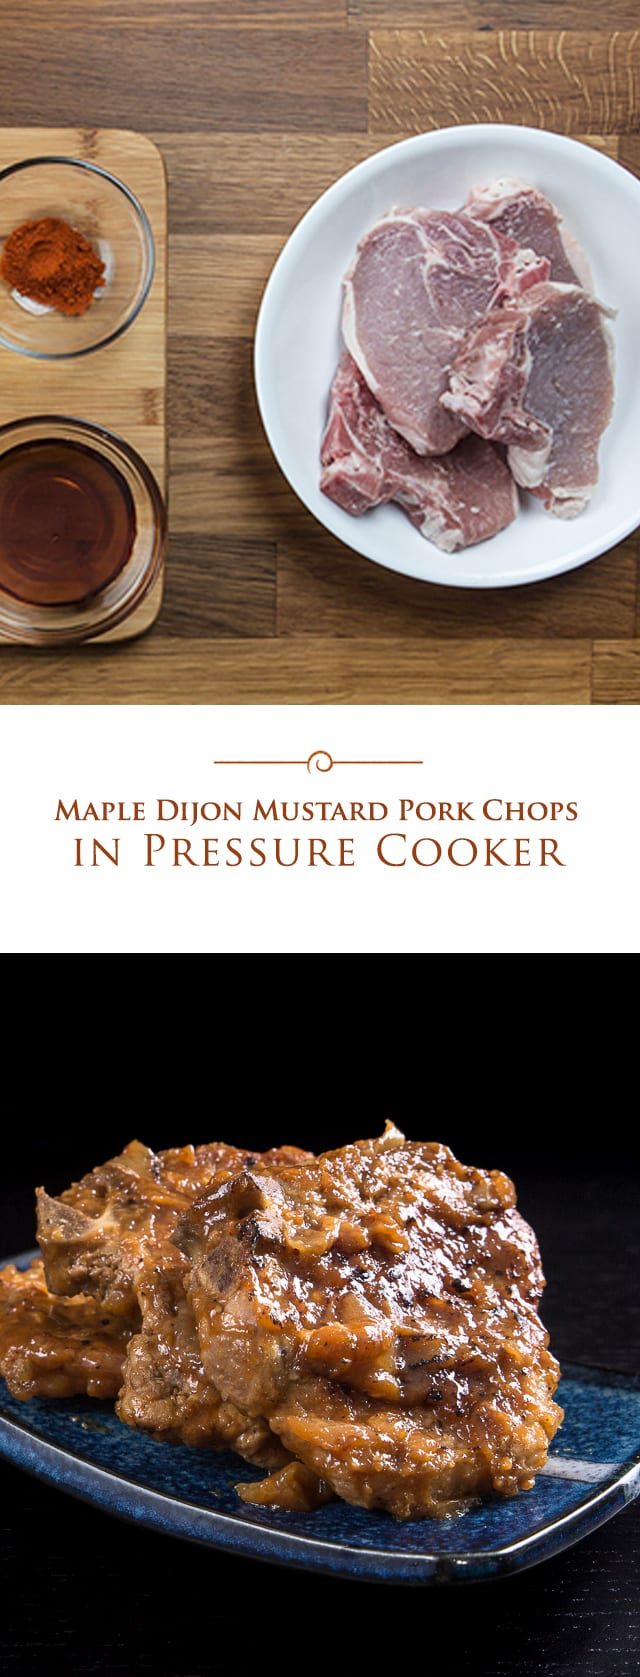 photo collage of Maple Dijon Mustard Pork Chops made in a pressure cooker